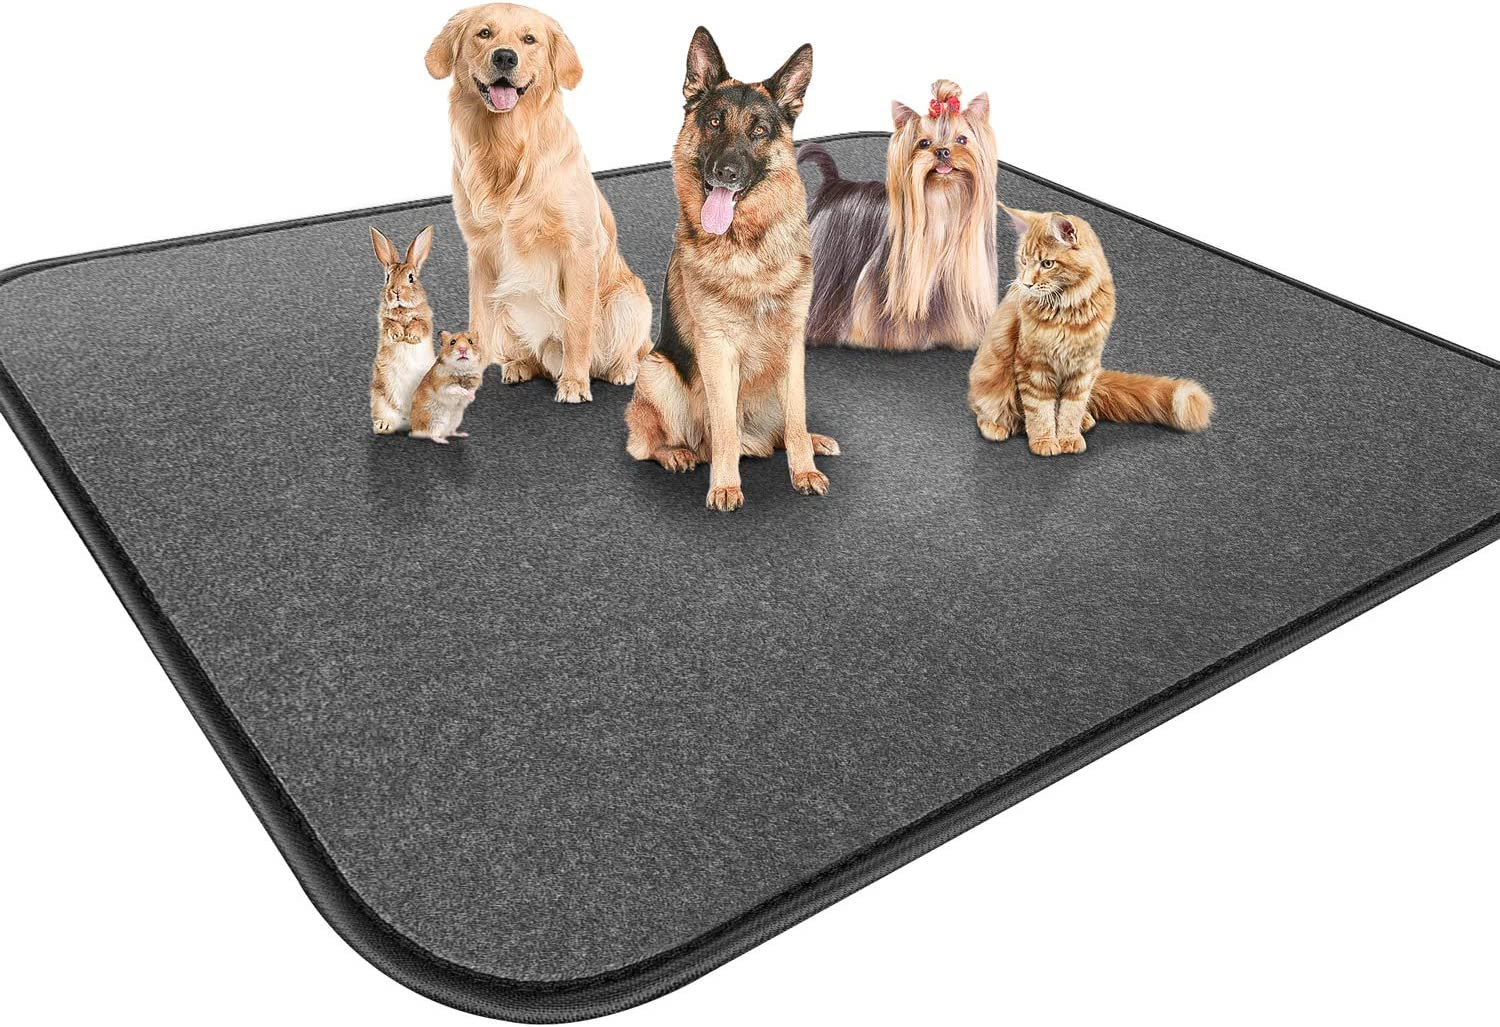 """Gimars Upgrade Heavy Absorbency Non-Slip Washable Dog Pee Pads, Reusable 72""""x72"""" Anti-Tear Dog Training Pads, Quick Dry Whelping Pads for Dogs, Dog Pads for Incontinence, Crate, Playpen"""